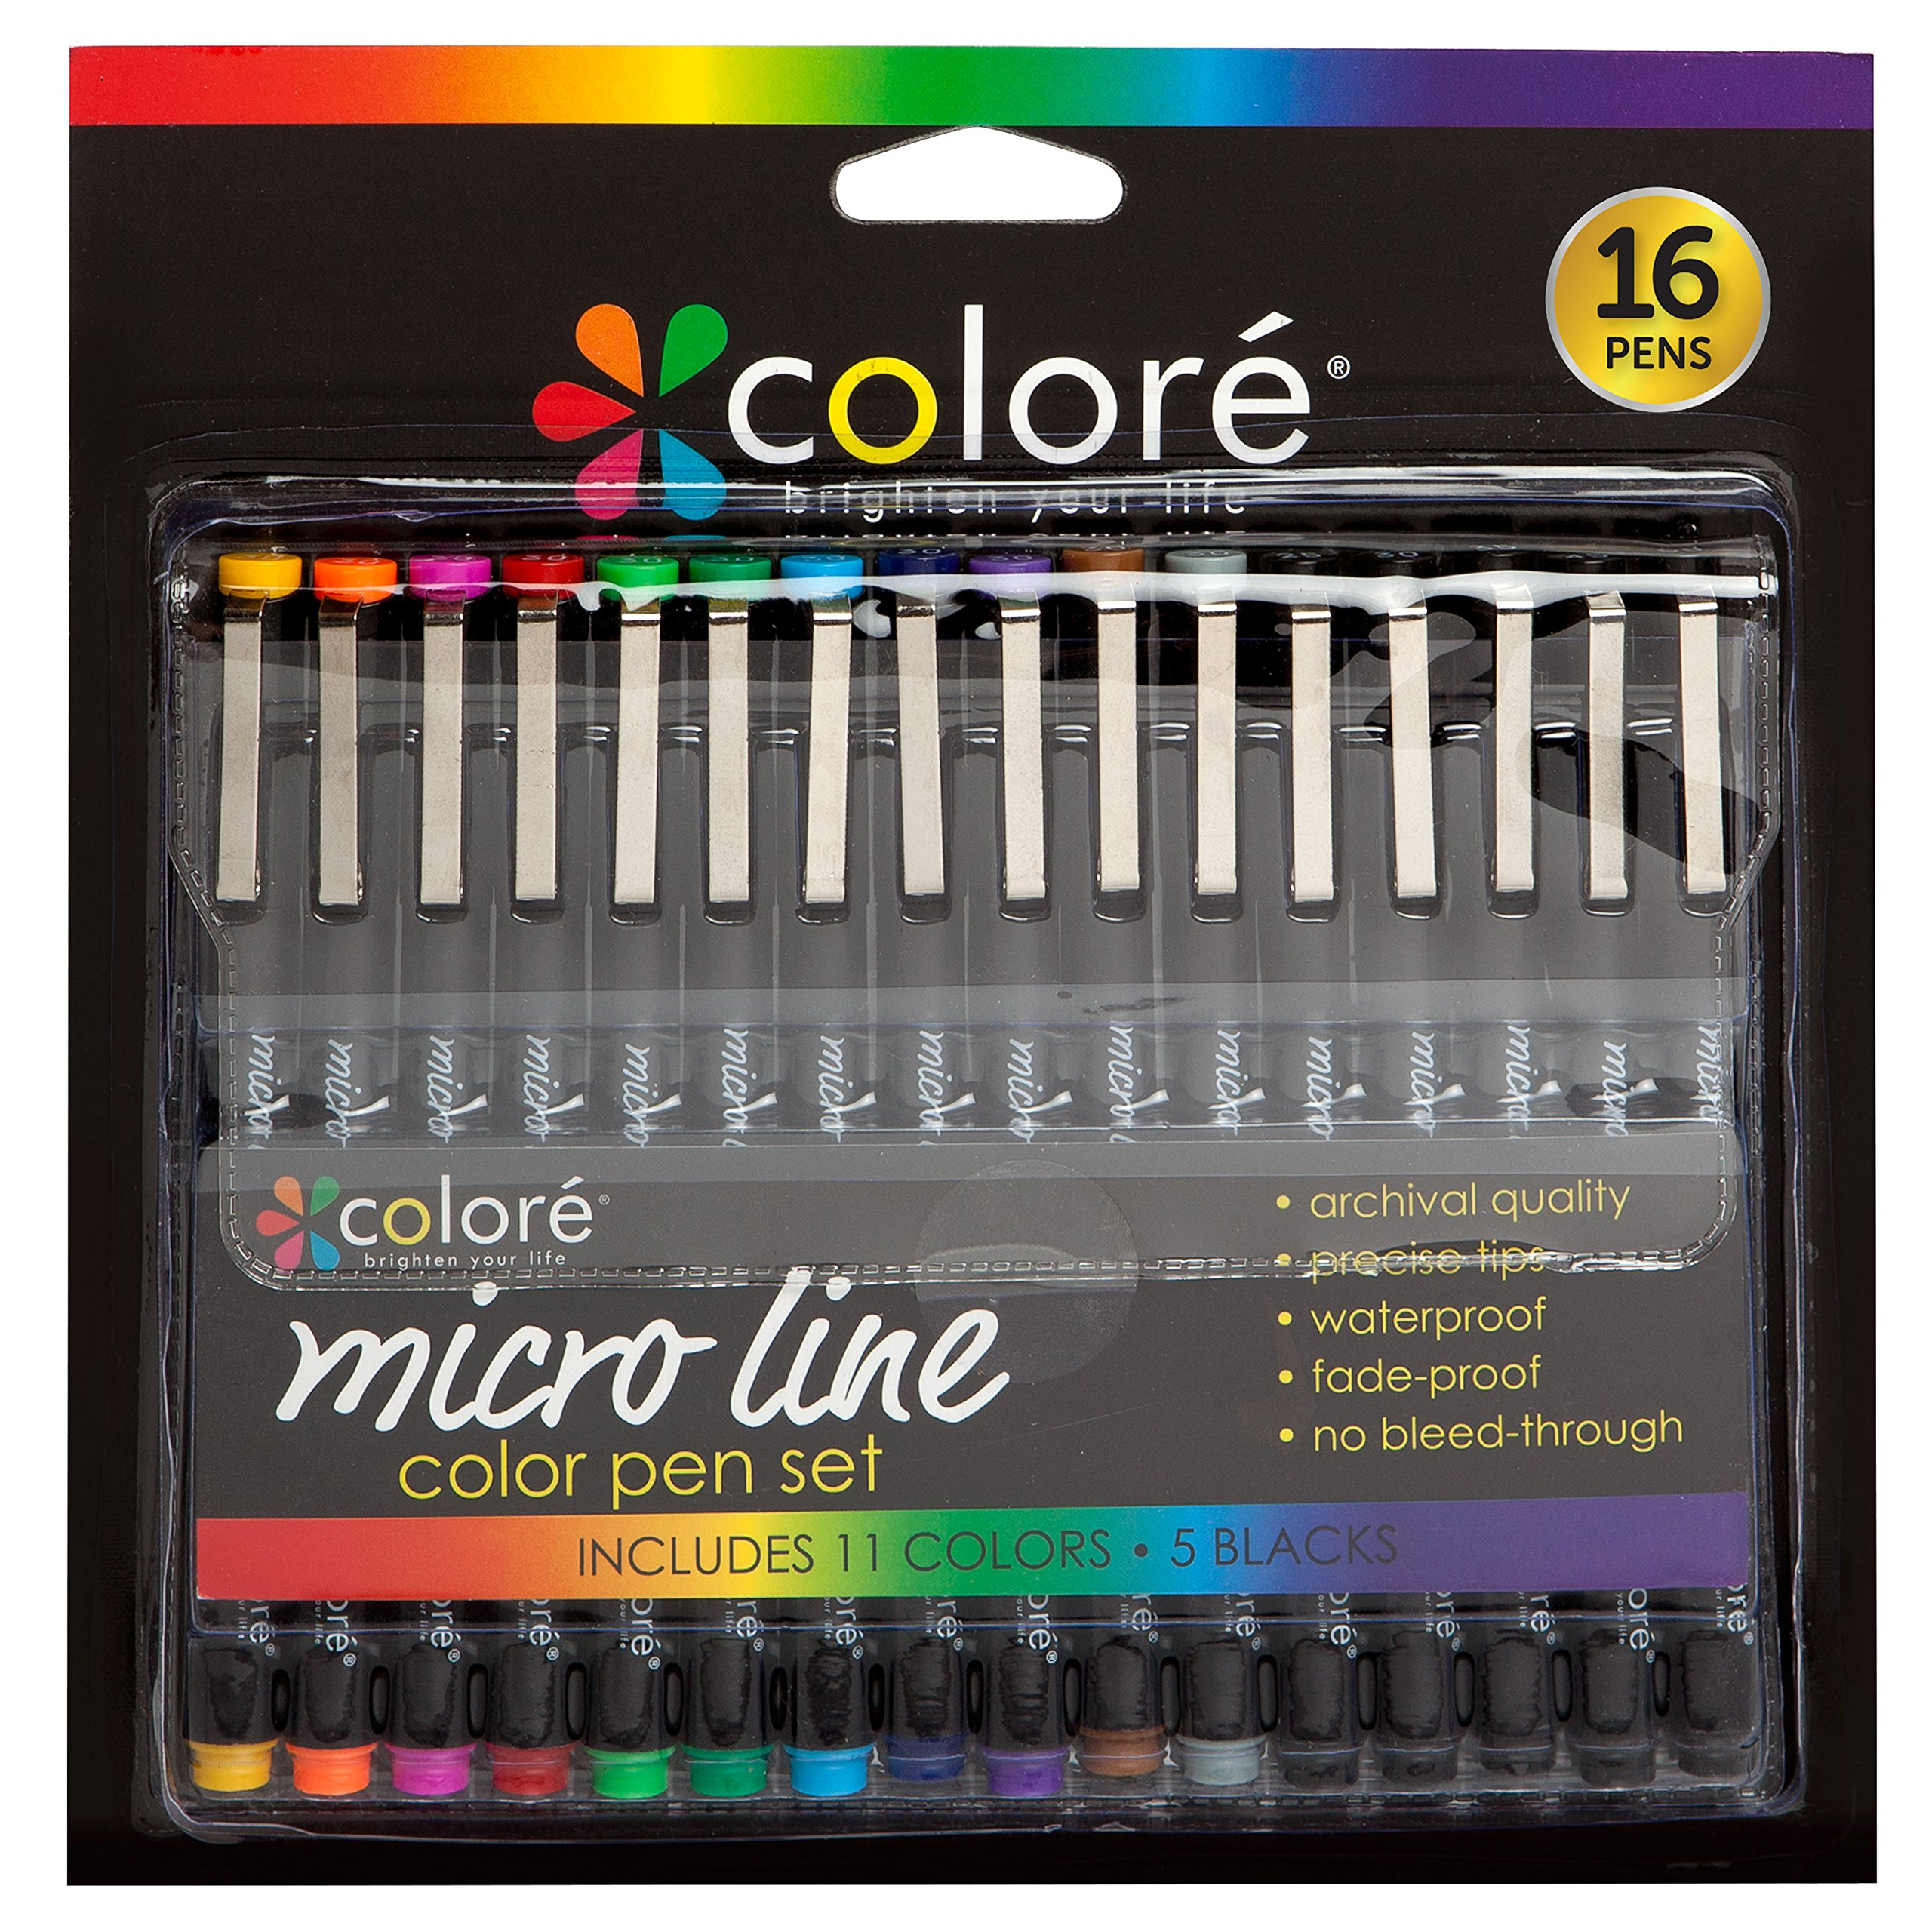 Colore PRECISION Ultra Fine Tip Micro Line Pens â Waterproof & Vibrant Color Inking Pen Set With Variety Nib Sizes (16 Pack)